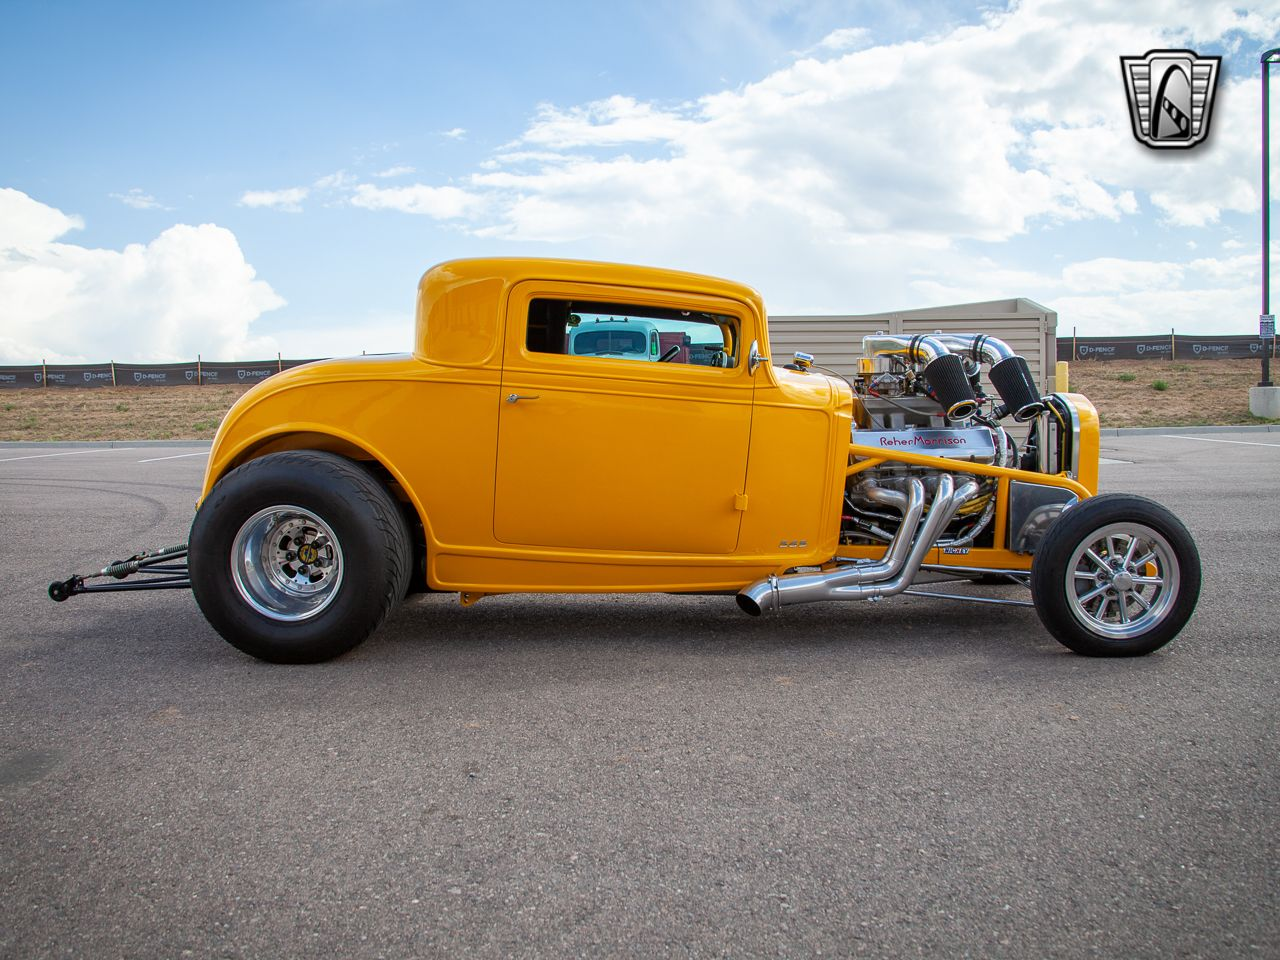 1932 Chevrolet 3 Window Coupe For Sale AllCollectorCars